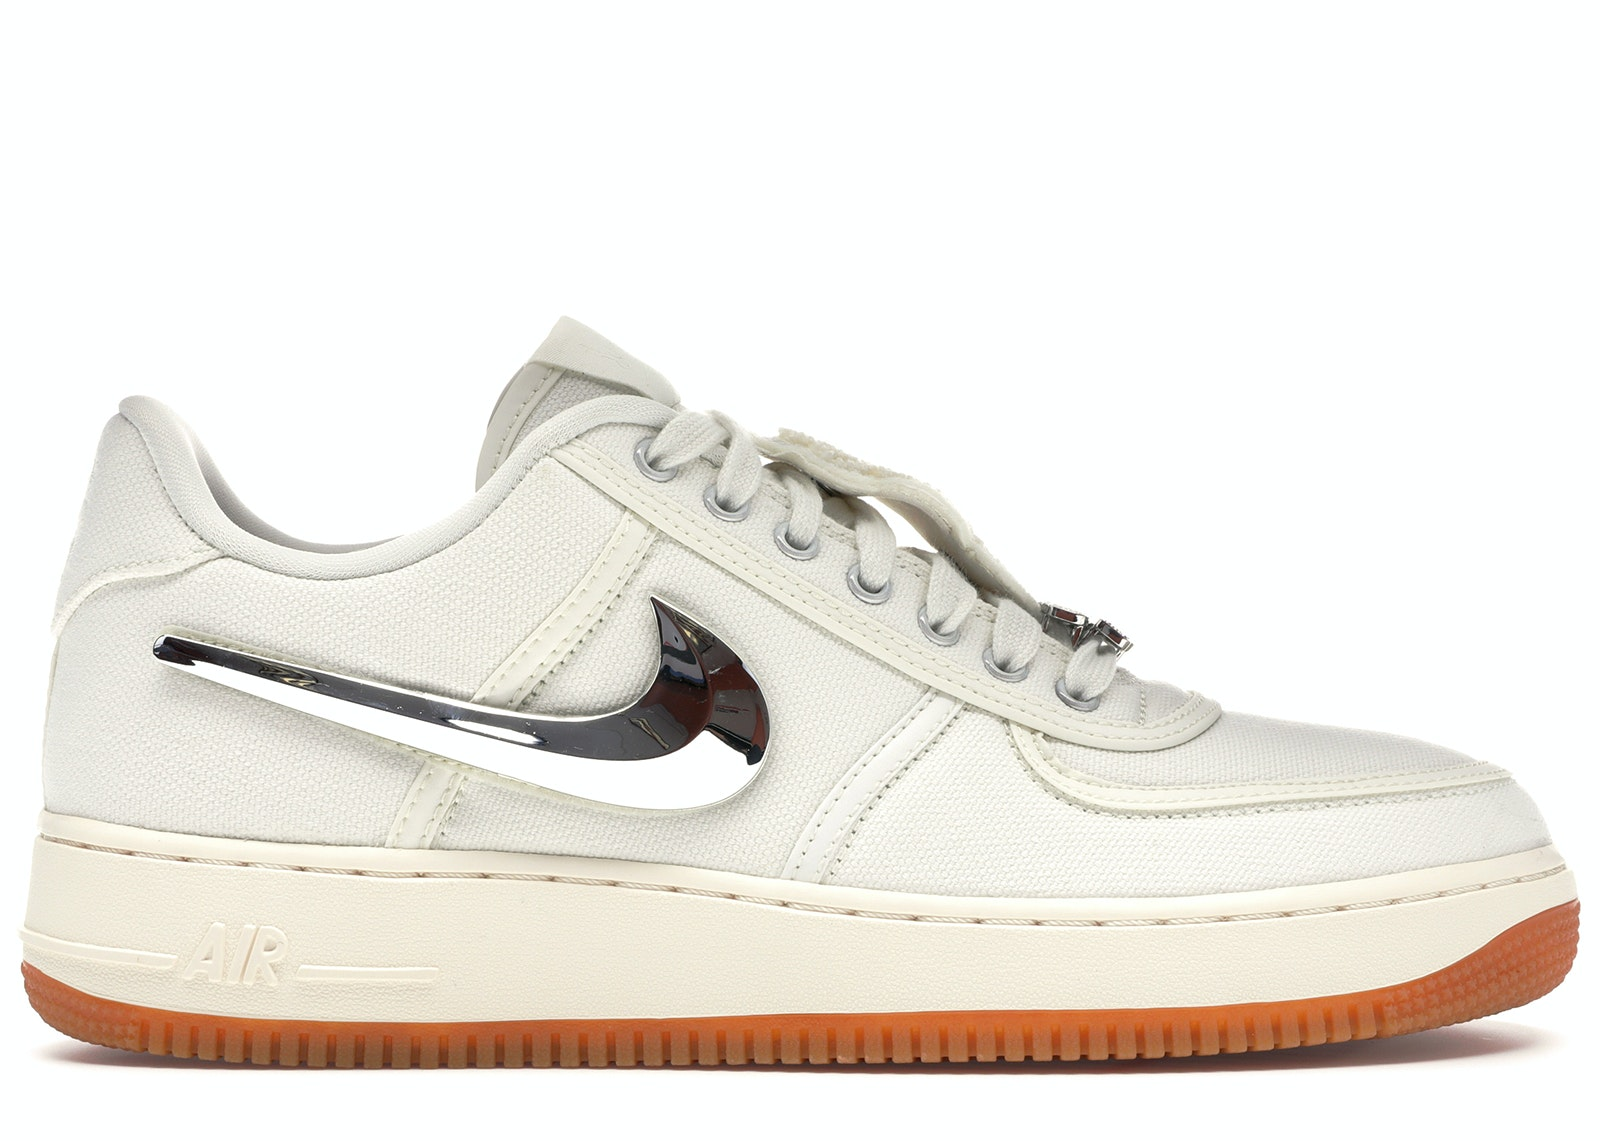 Air Force 1 Low Travis Scott Sail